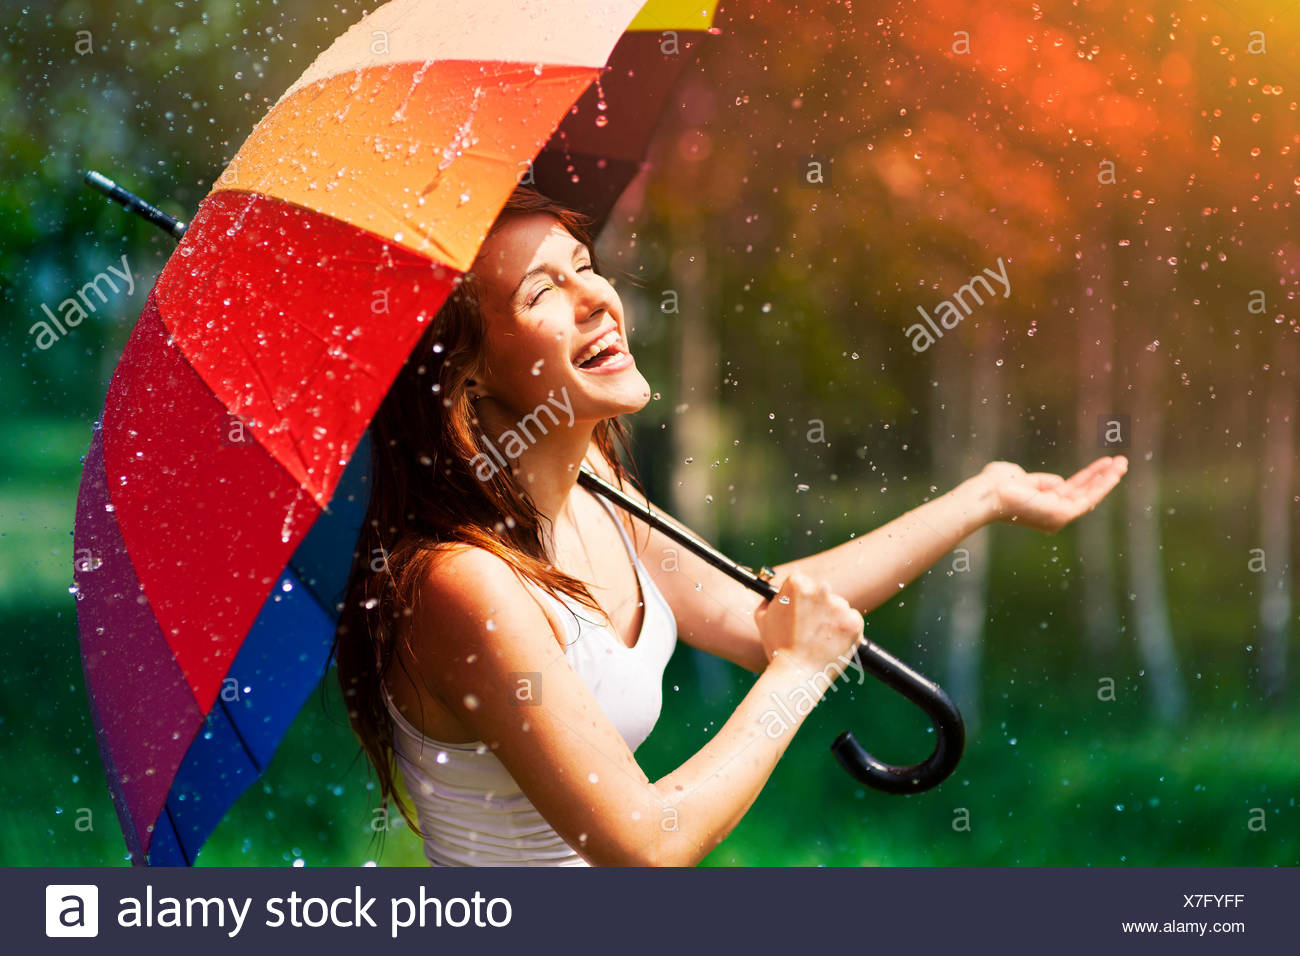 Laughing woman with umbrella checking for rain, Debica, Poland - Stock Image